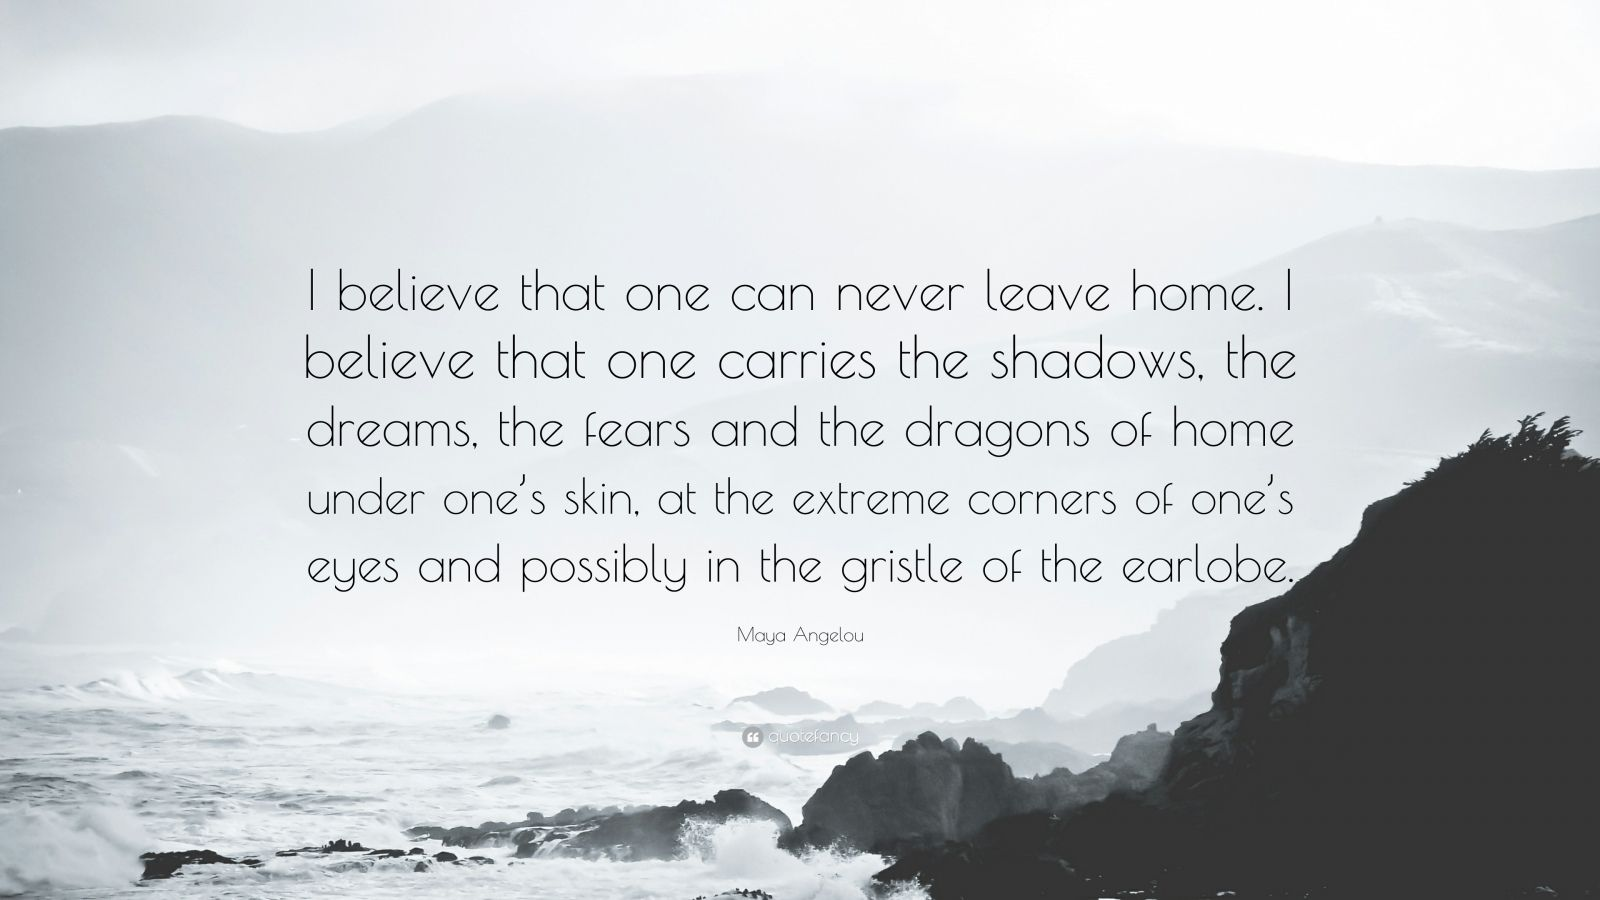 "Maya Angelou Quote: ""I believe that one can never leave home. I believe that one carries the shadows, the dreams, the fears and the dragons of home under one's skin, at the extreme corners of one's eyes and possibly in the gristle of the earlobe."""